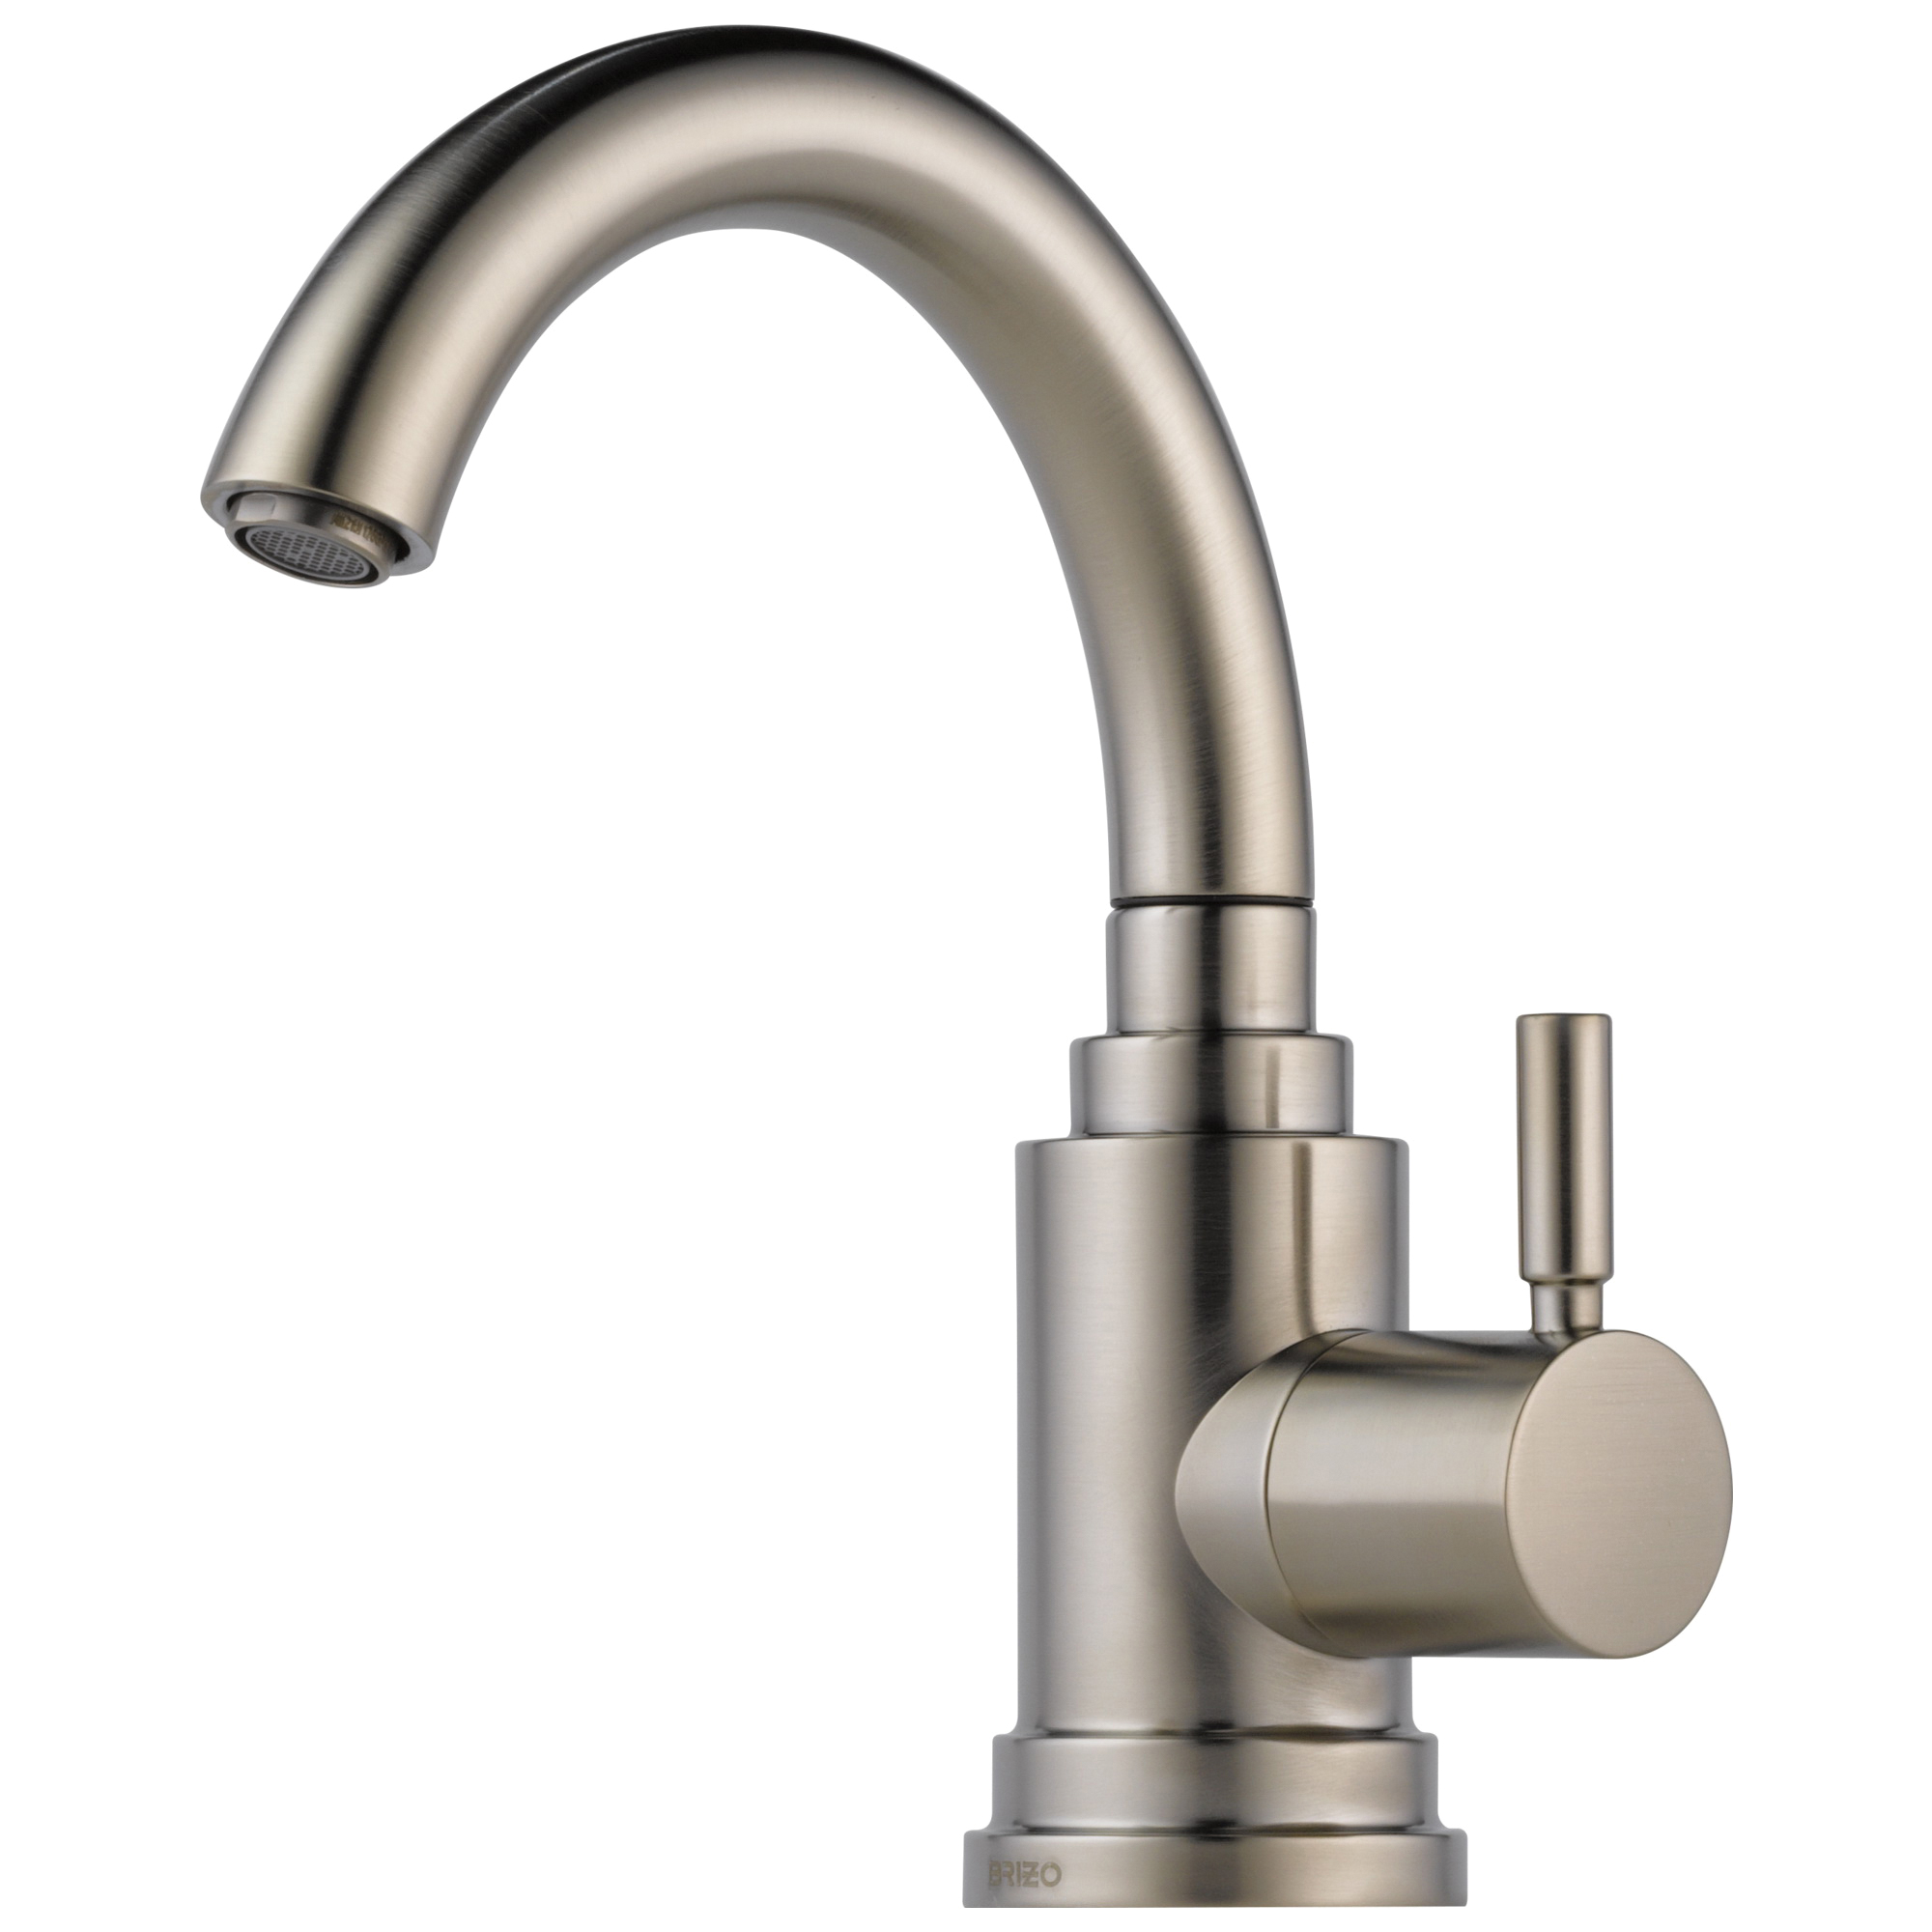 Brizo® 61320LF-SS Euro Beverage Faucet, 1.5 gpm, Stainless Steel, 1 Handles, Domestic